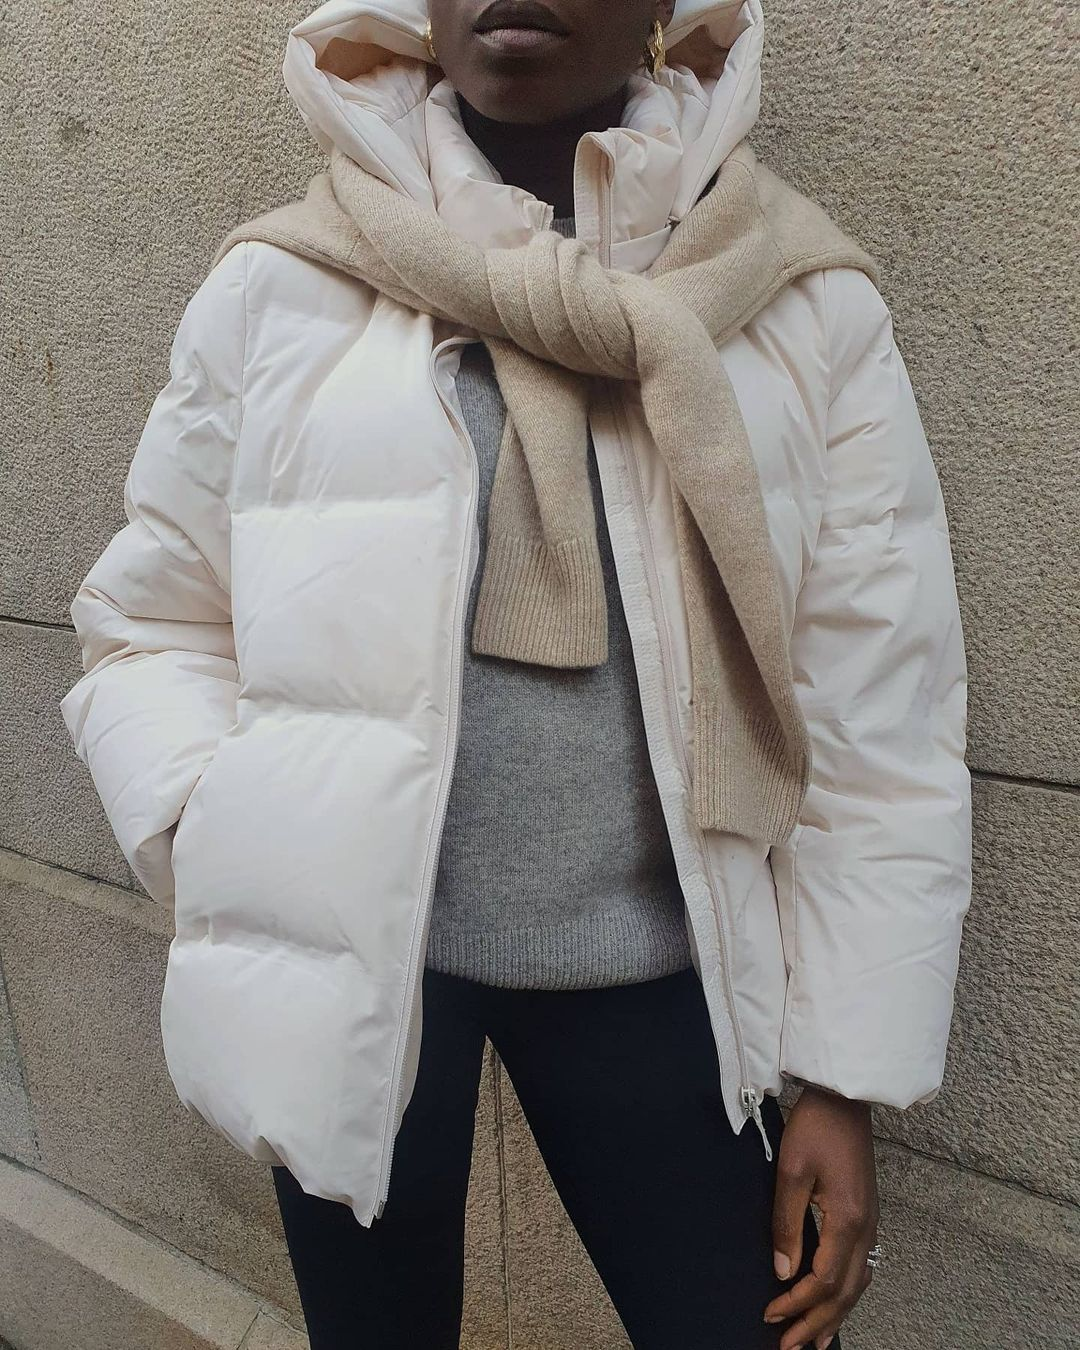 Cozy Winter Neutral Outfit Idea —@chrystelleeriksberger white puffr coat, tan scarf and gray sweater